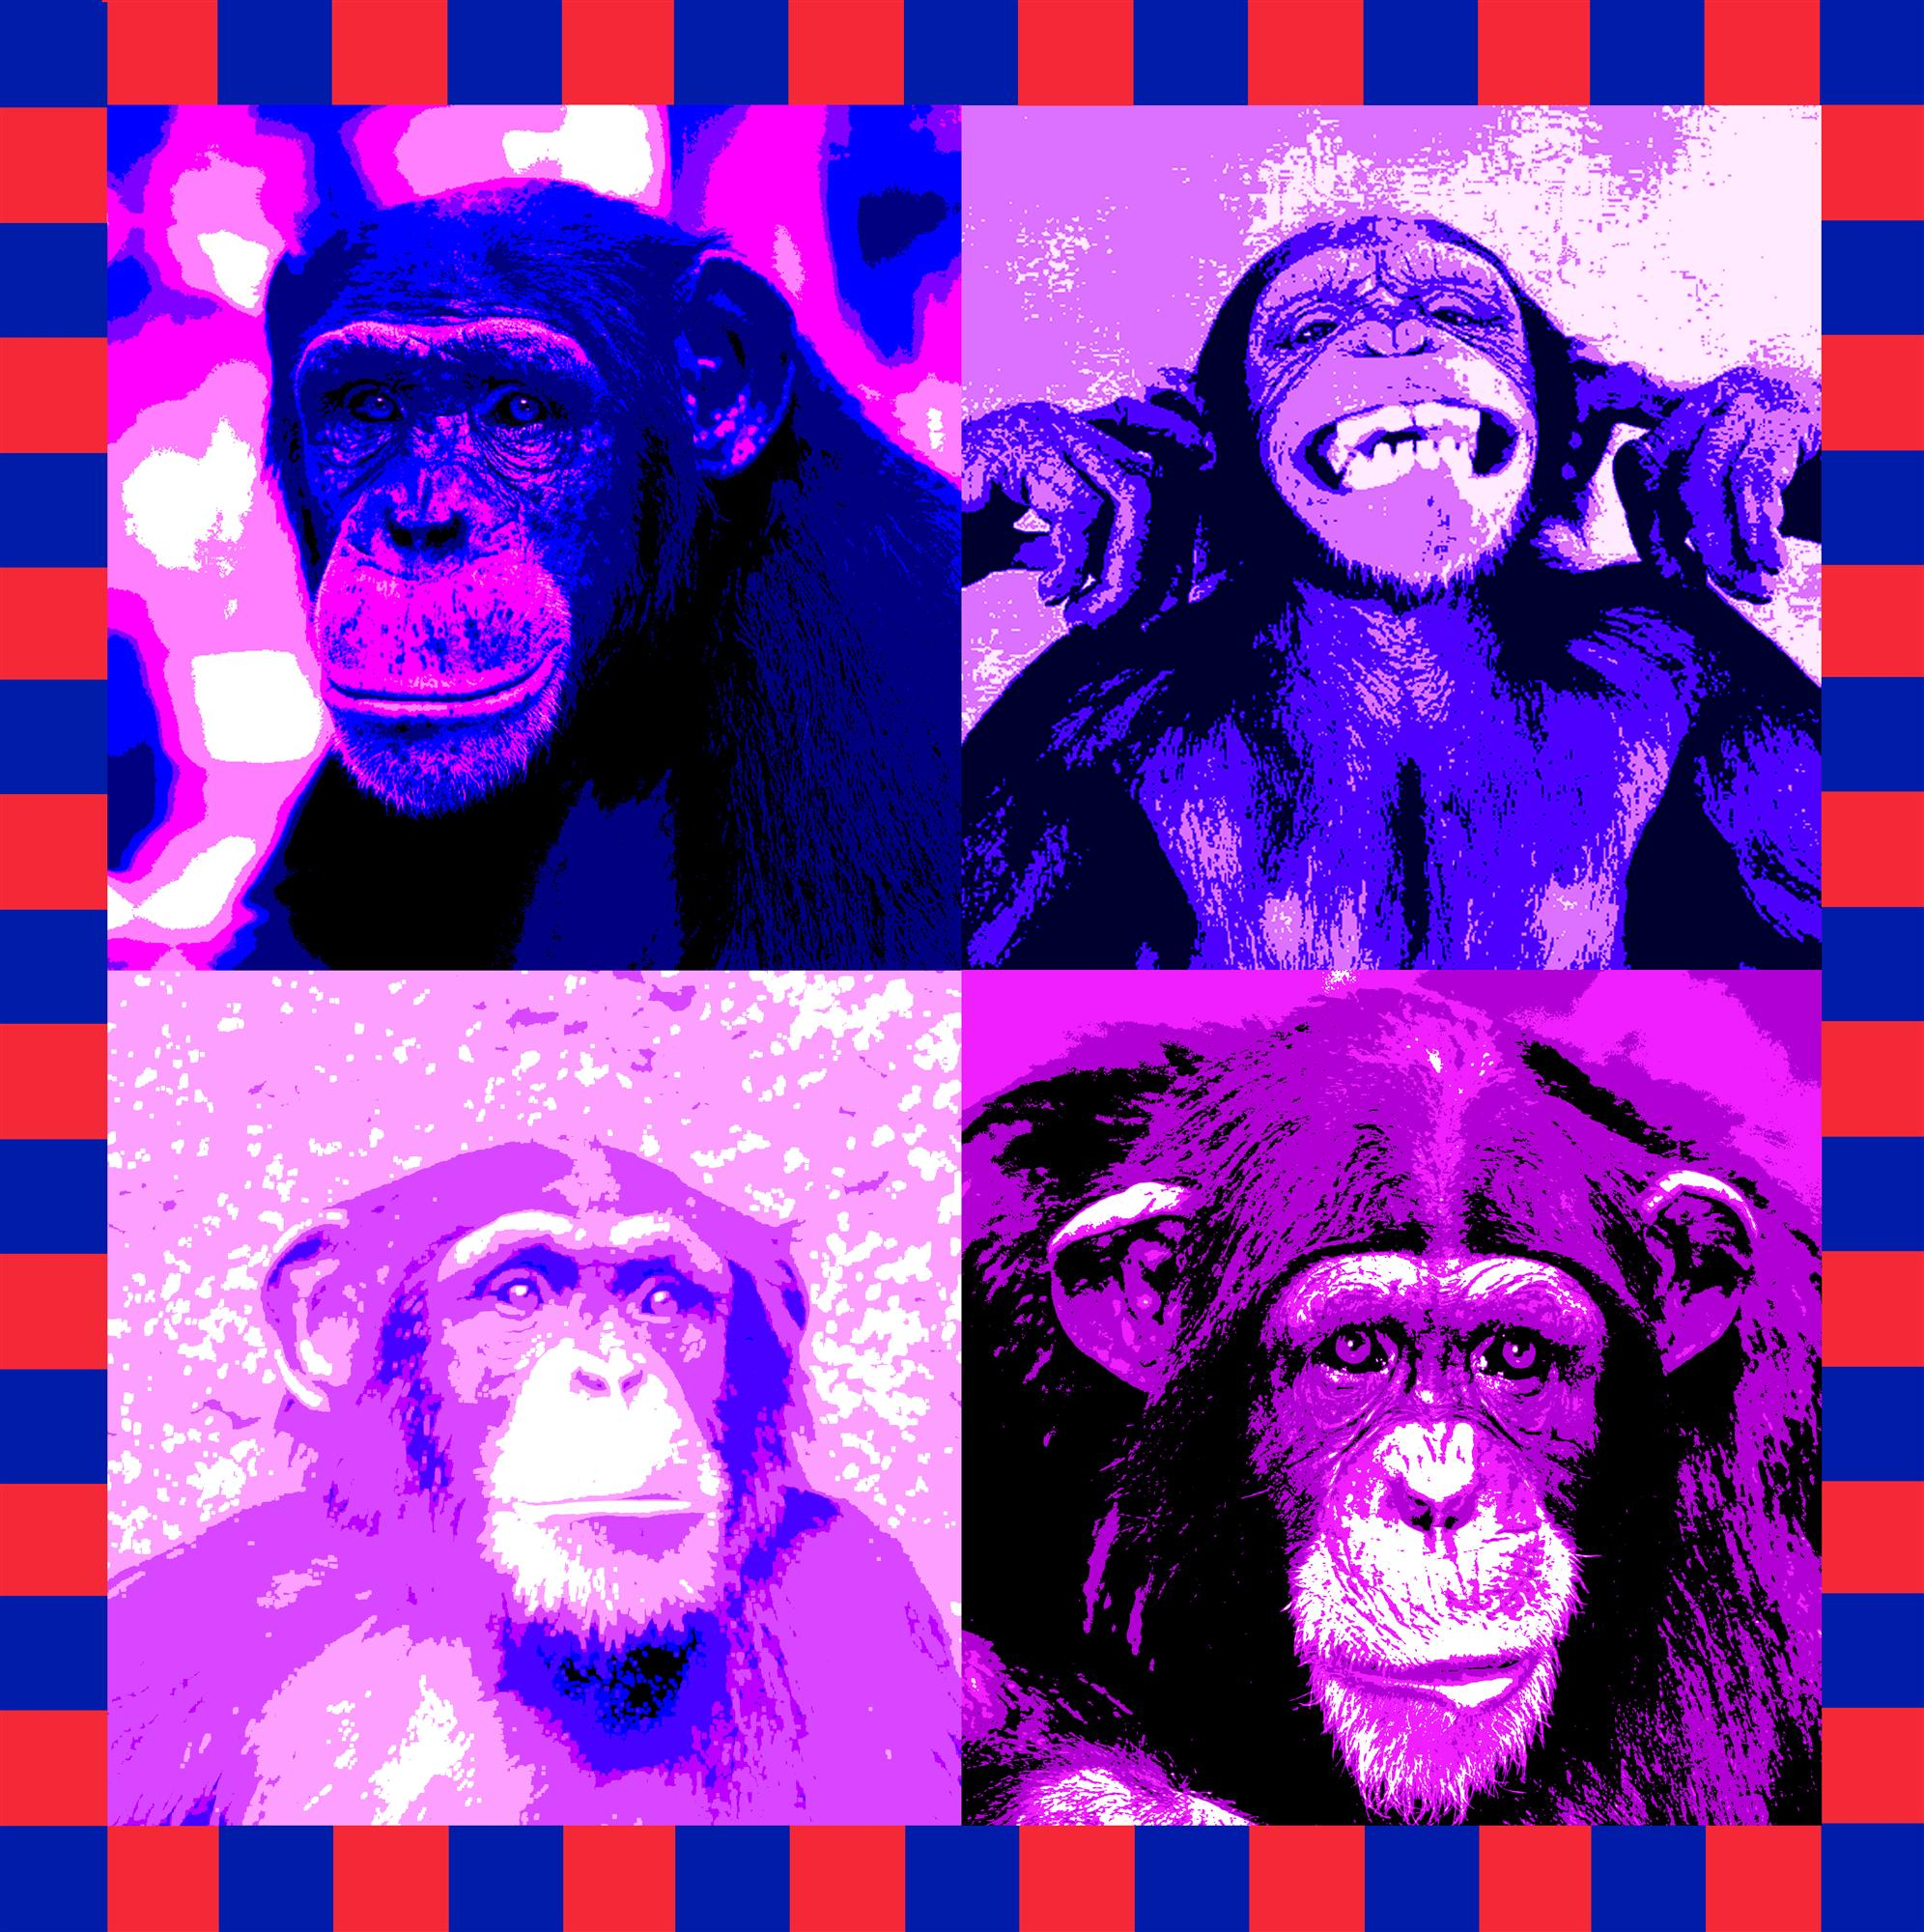 Chimp Composite final 28 may 2010 (Custom).jpg